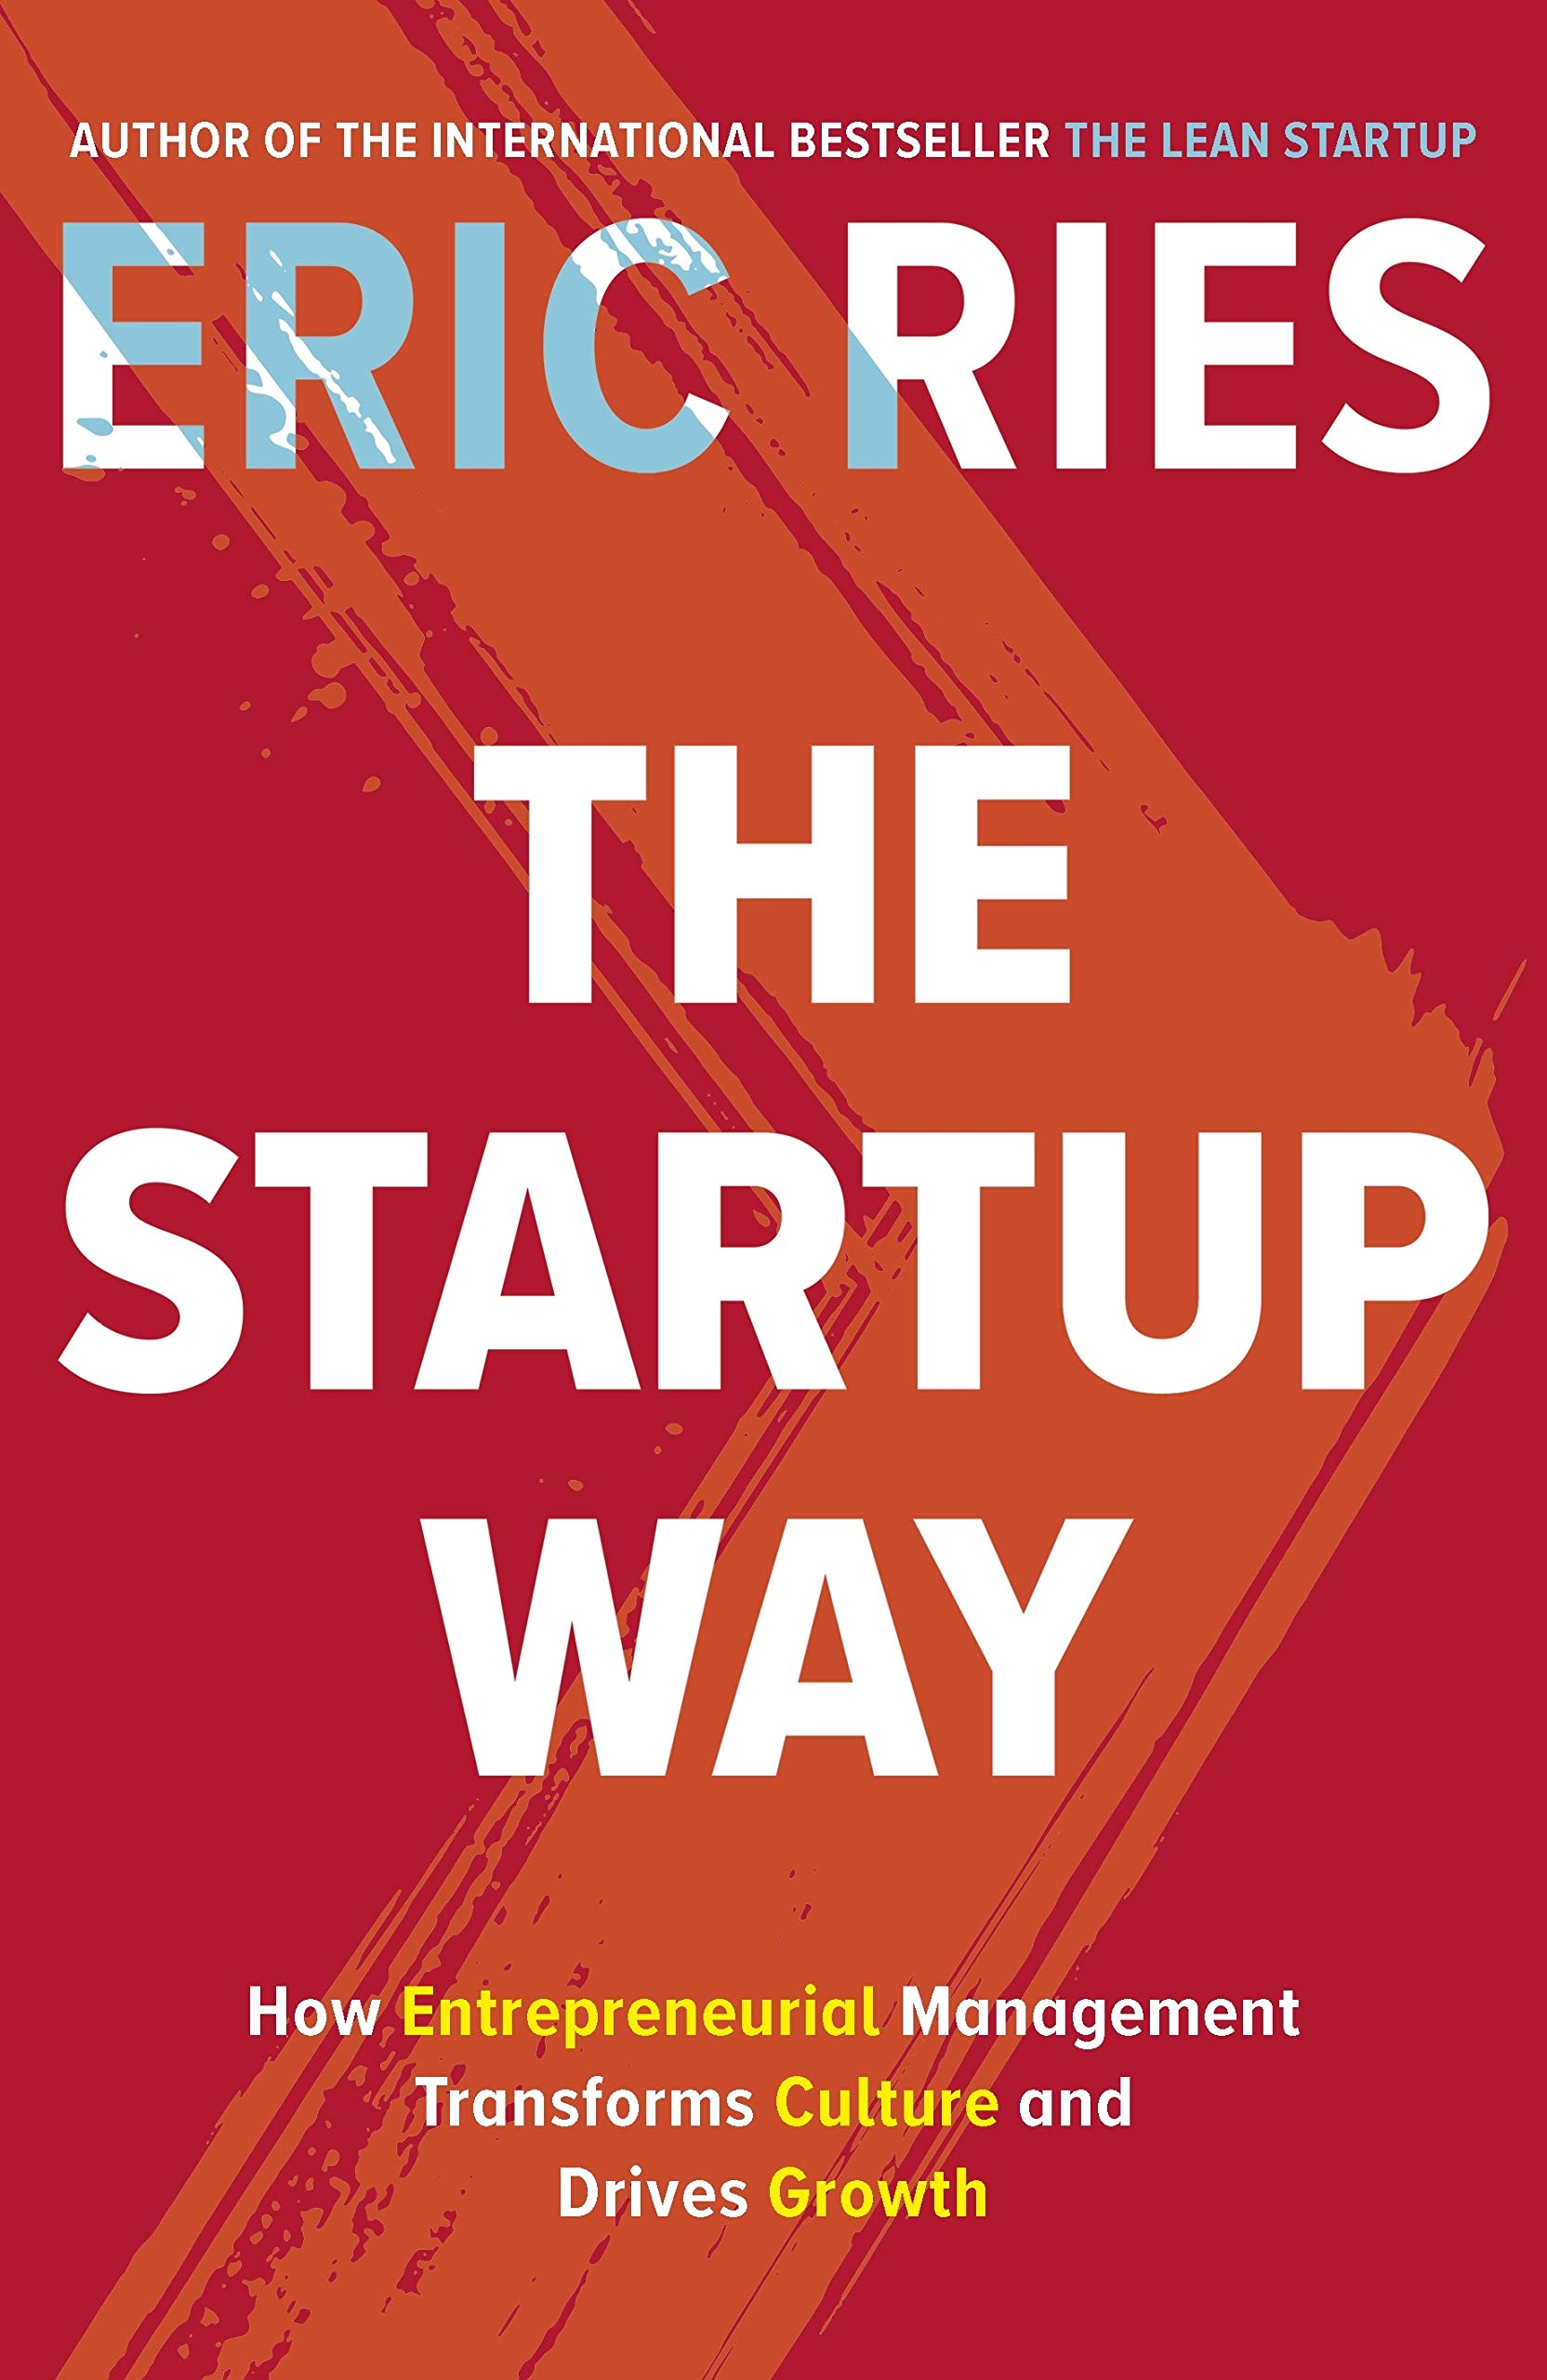 The Startup Way: How Entrepreneurial Management Transforms Culture and  Drives Growth: Amazon.co.uk: Ries, Eric: 9780241197264: Books